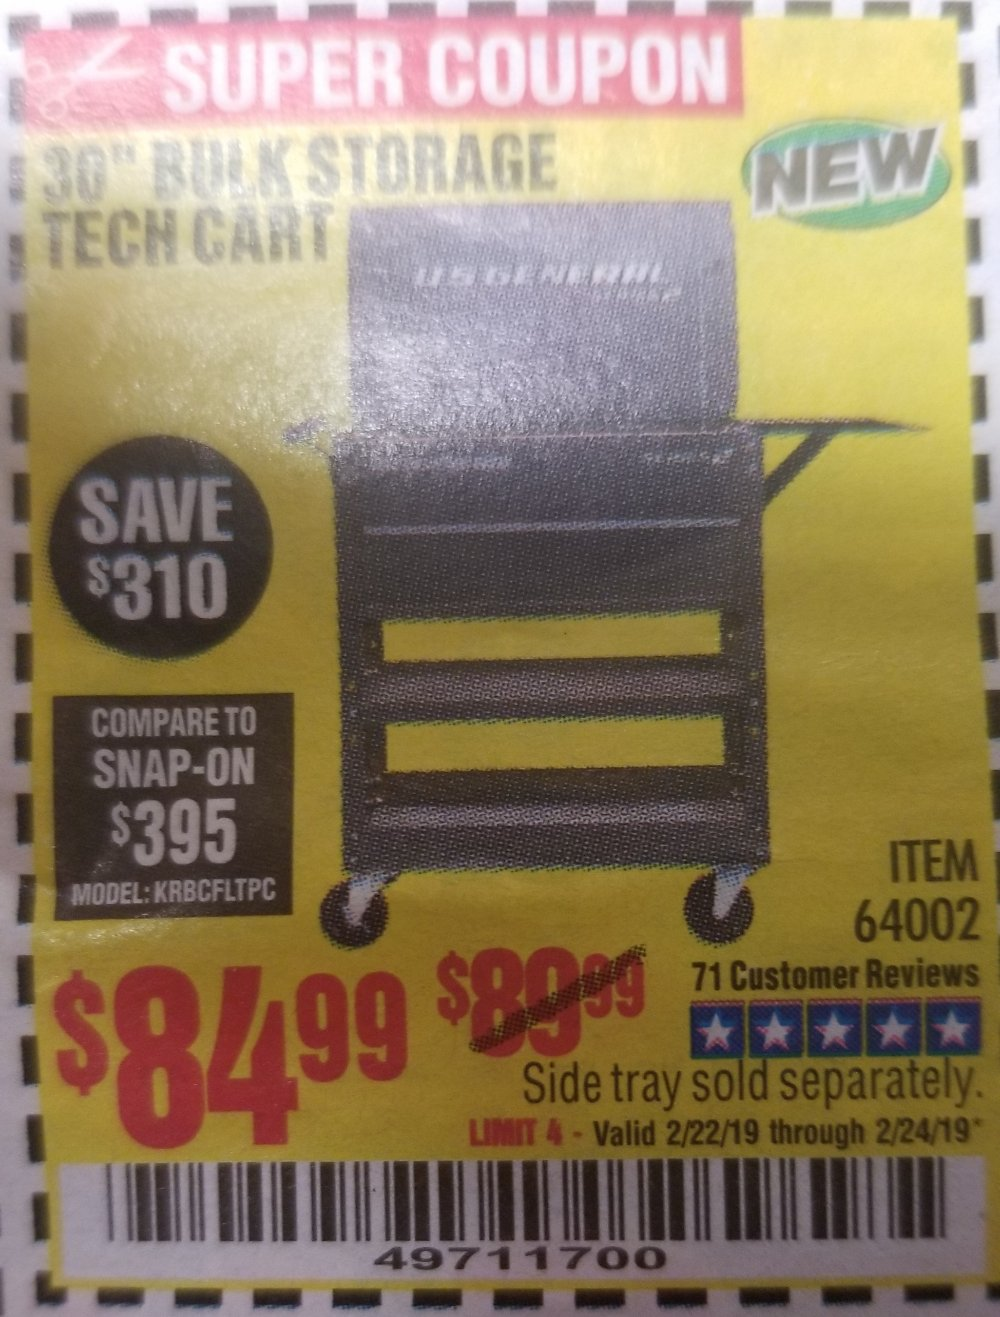 Harbor Freight Coupon, HF Coupons - Super Coupon